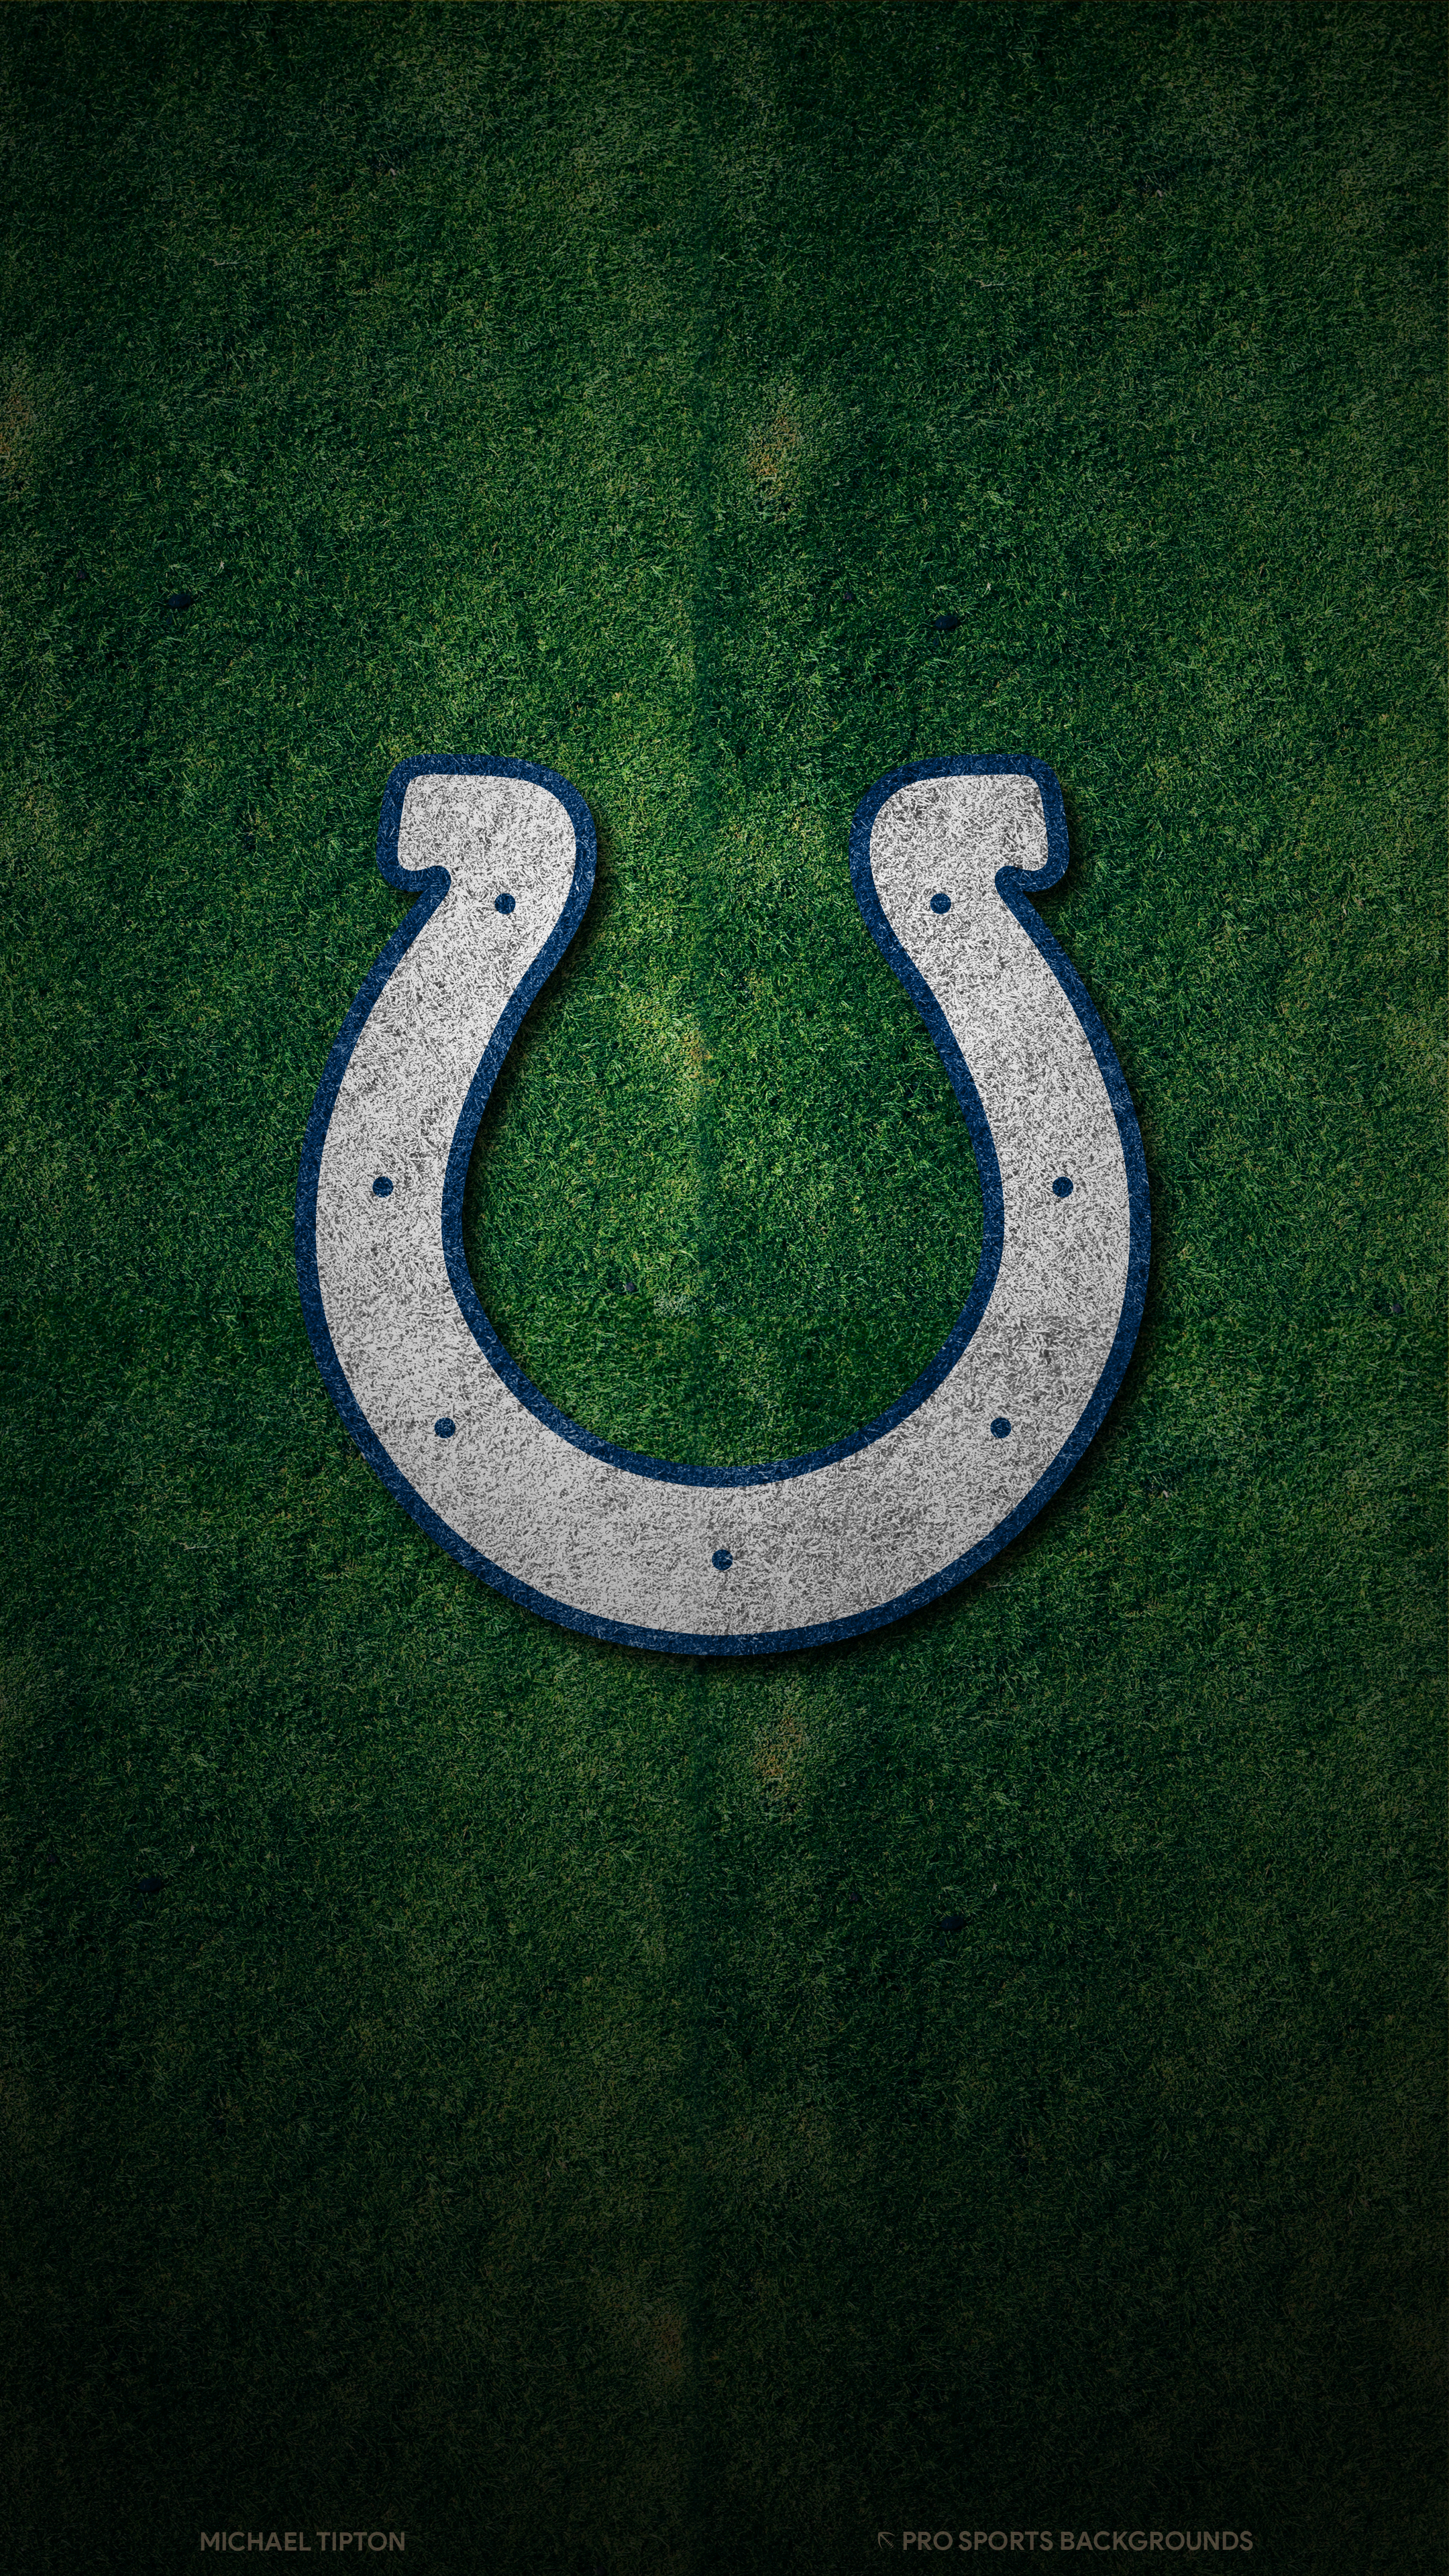 2020 Indianapolis Colts Wallpapers Pro Sports Backgrounds